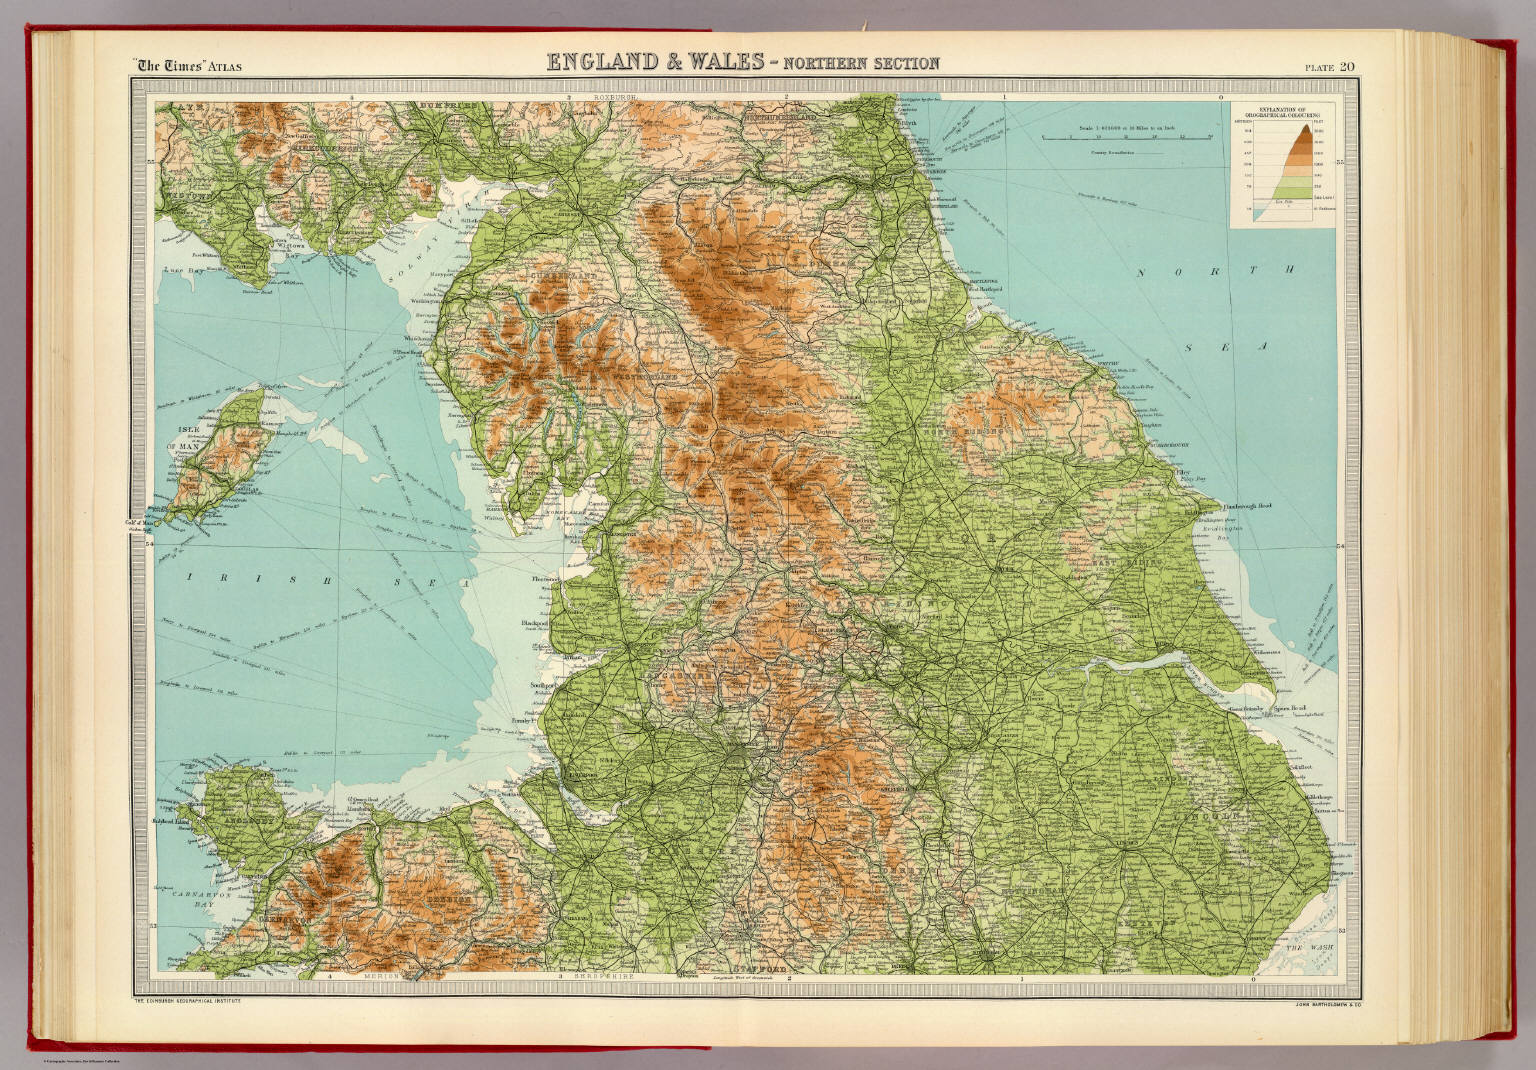 England wales northern section david rumsey historical map england wales northern section gumiabroncs Image collections